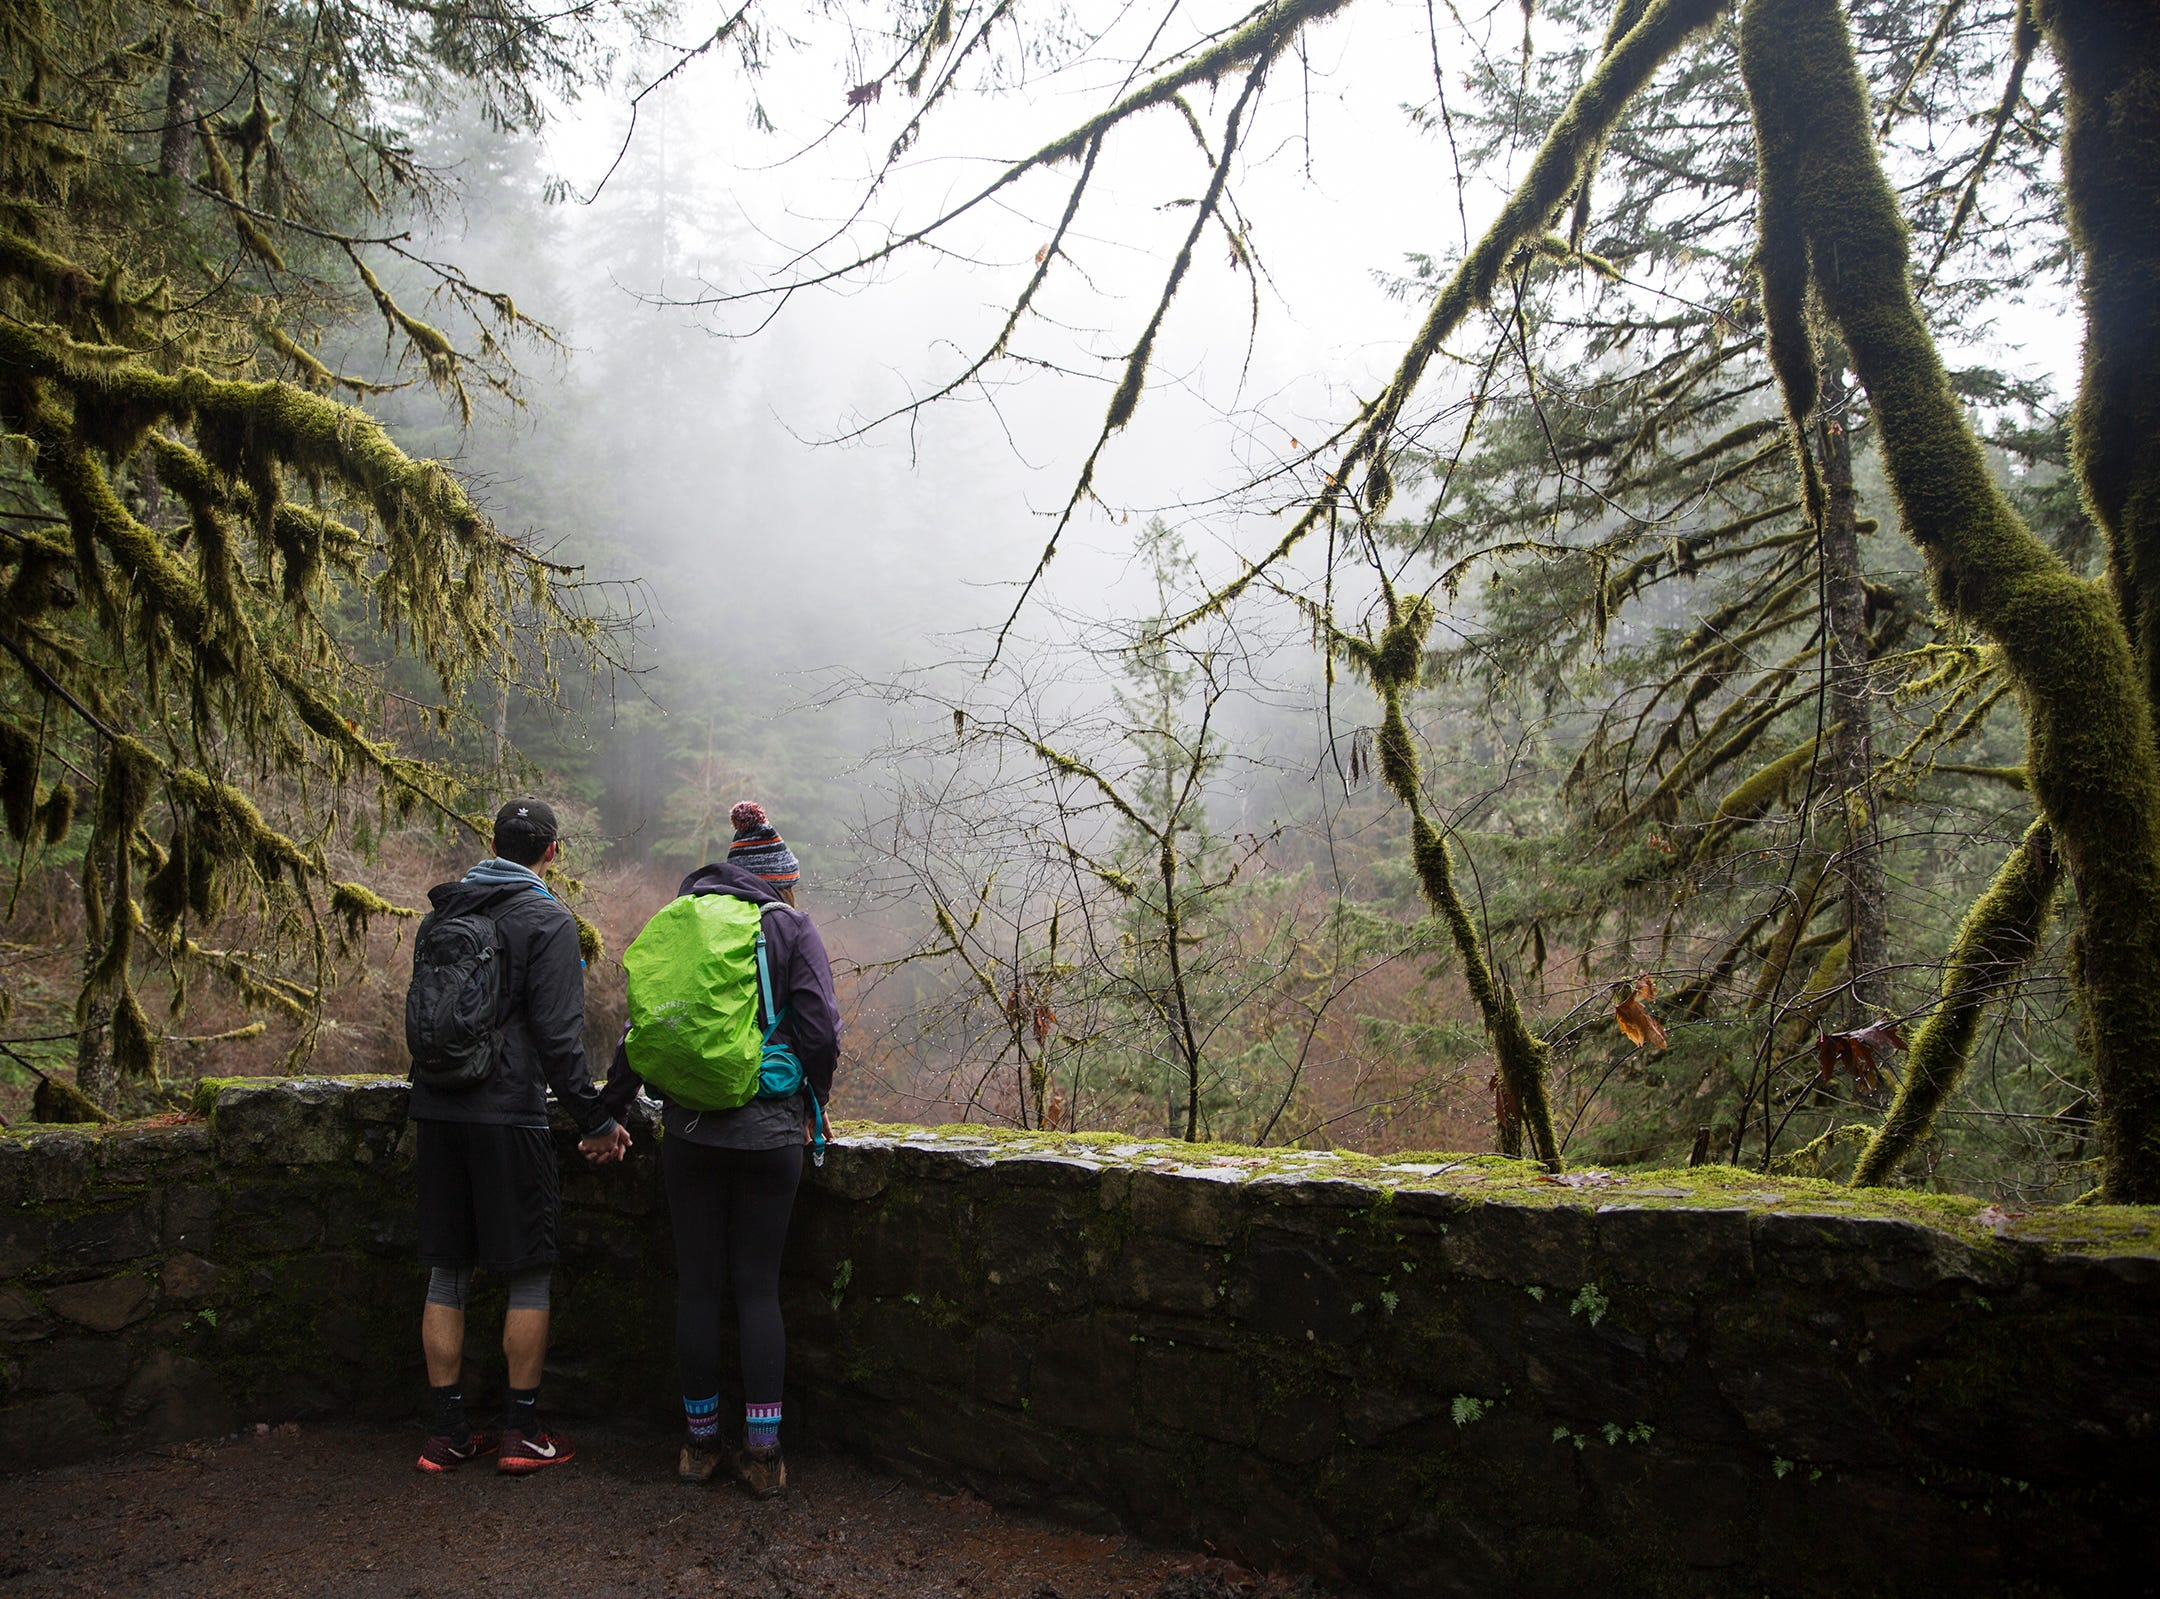 Hikers take in the view at Silver Falls State Park in Sublimity on Wednesday, Dec. 26, 2018.